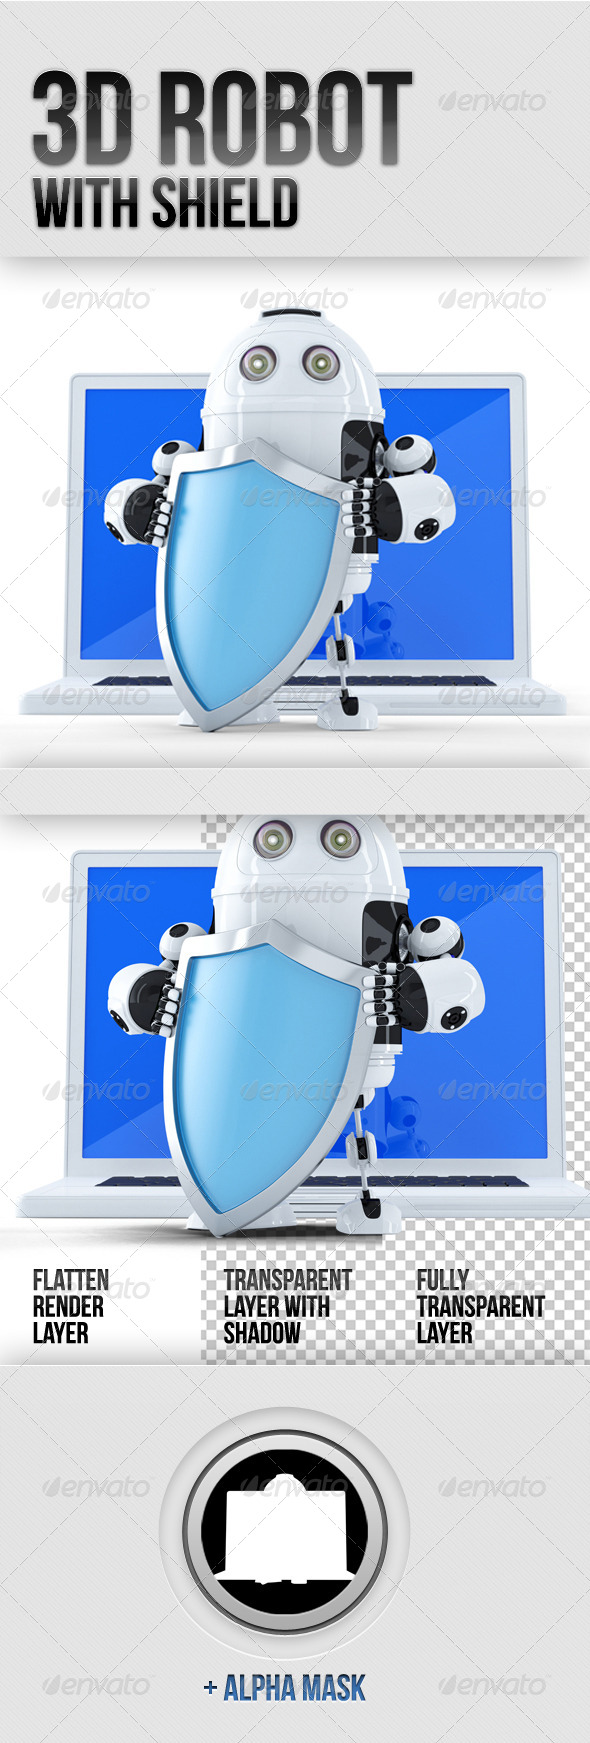 GraphicRiver 3D Robot with Shield 5883563